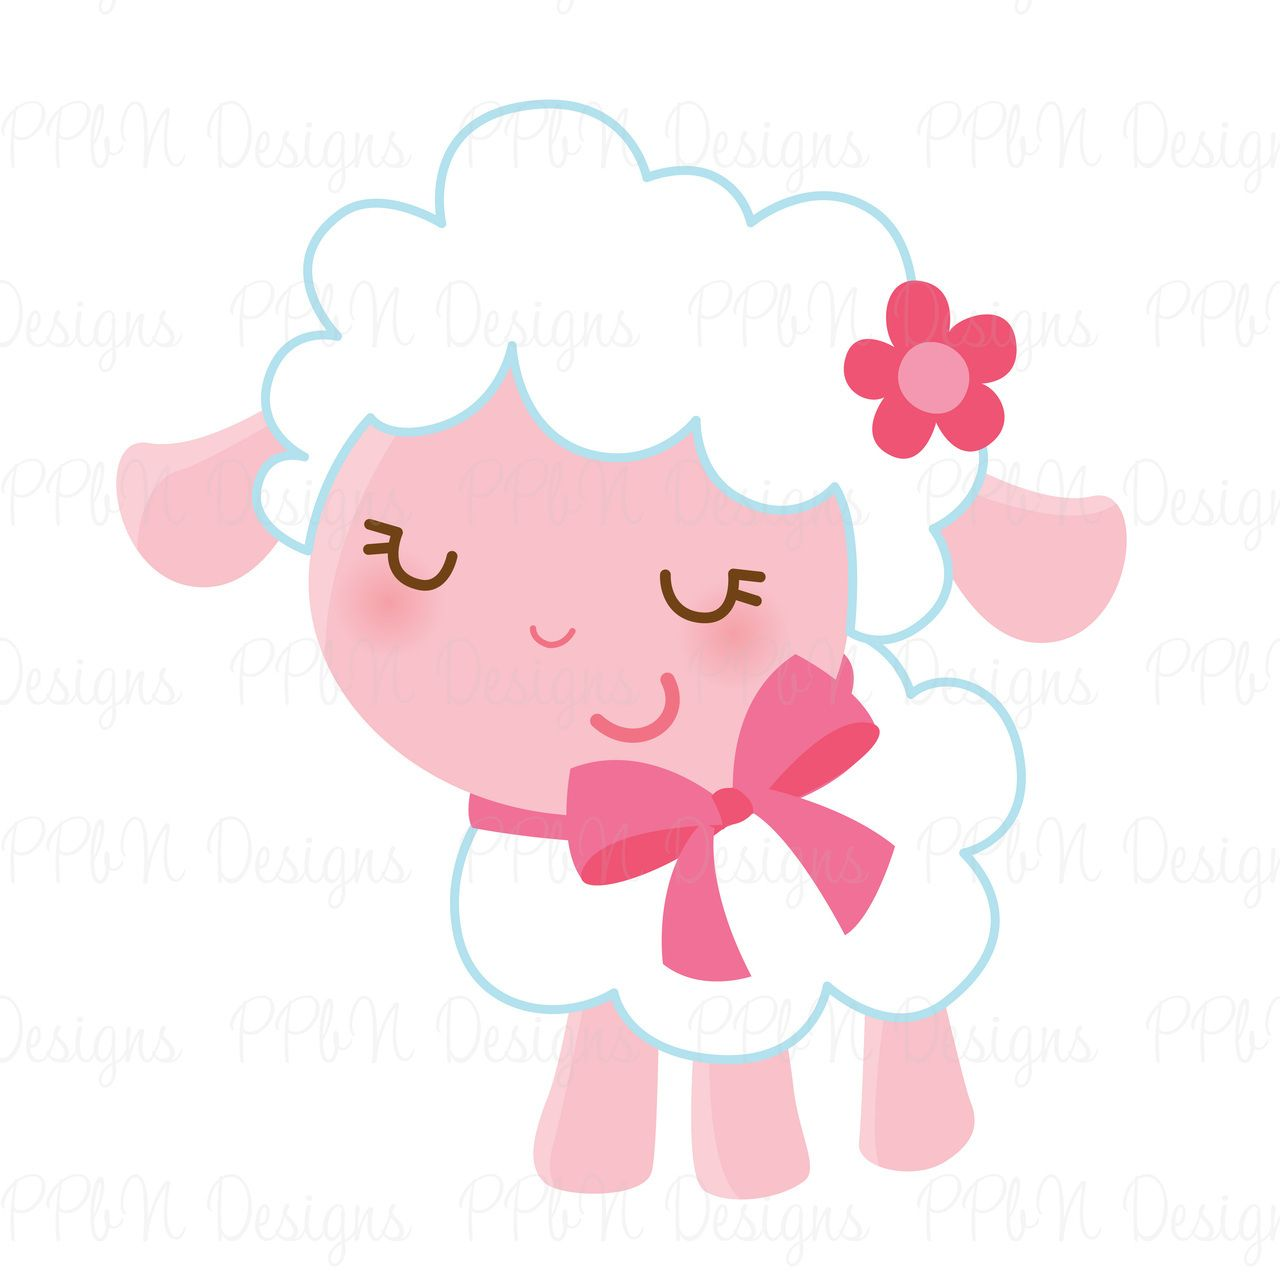 Baby Lamb Drawing Pin By Jennifer Ware On Zenware Designs Pinterest